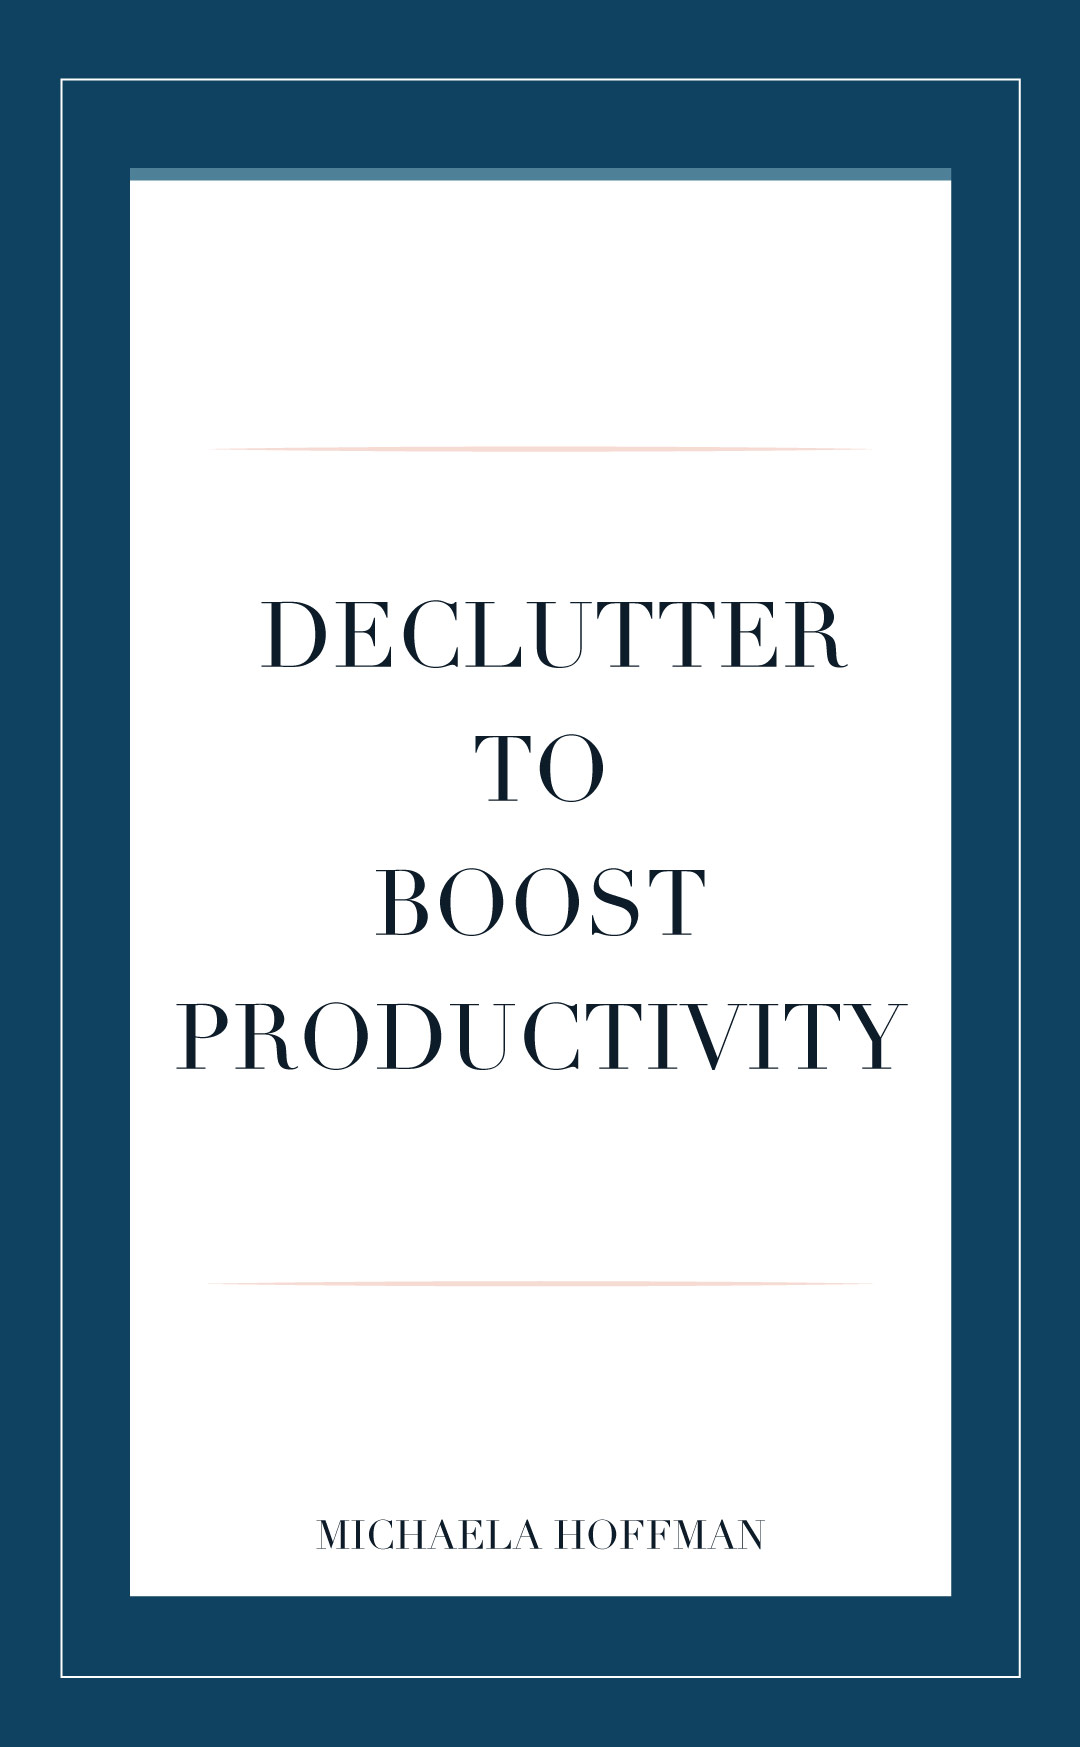 Yes You DO Need To Declutter To Boost Productivity